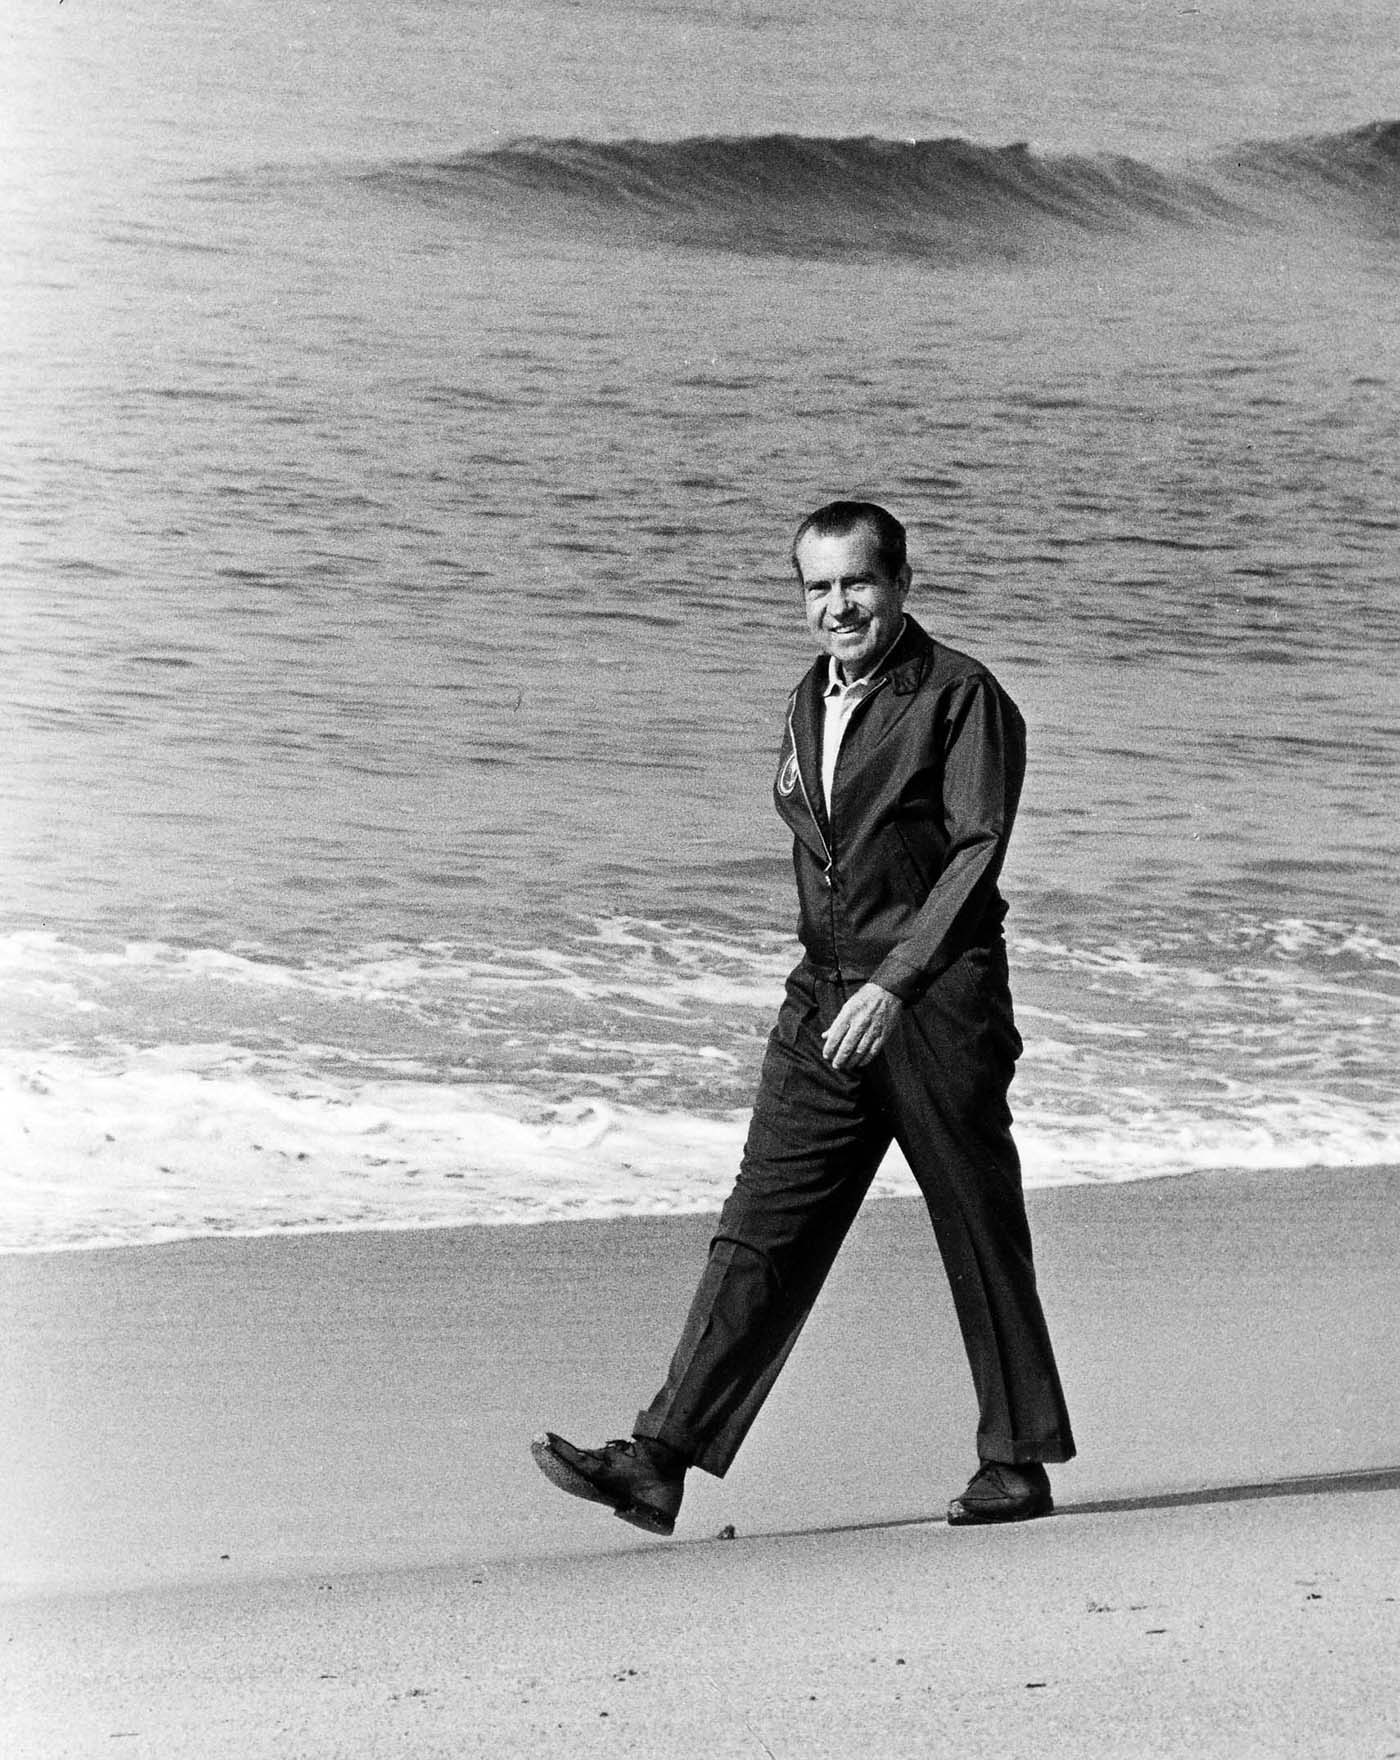 Richard Nixon walking on beach